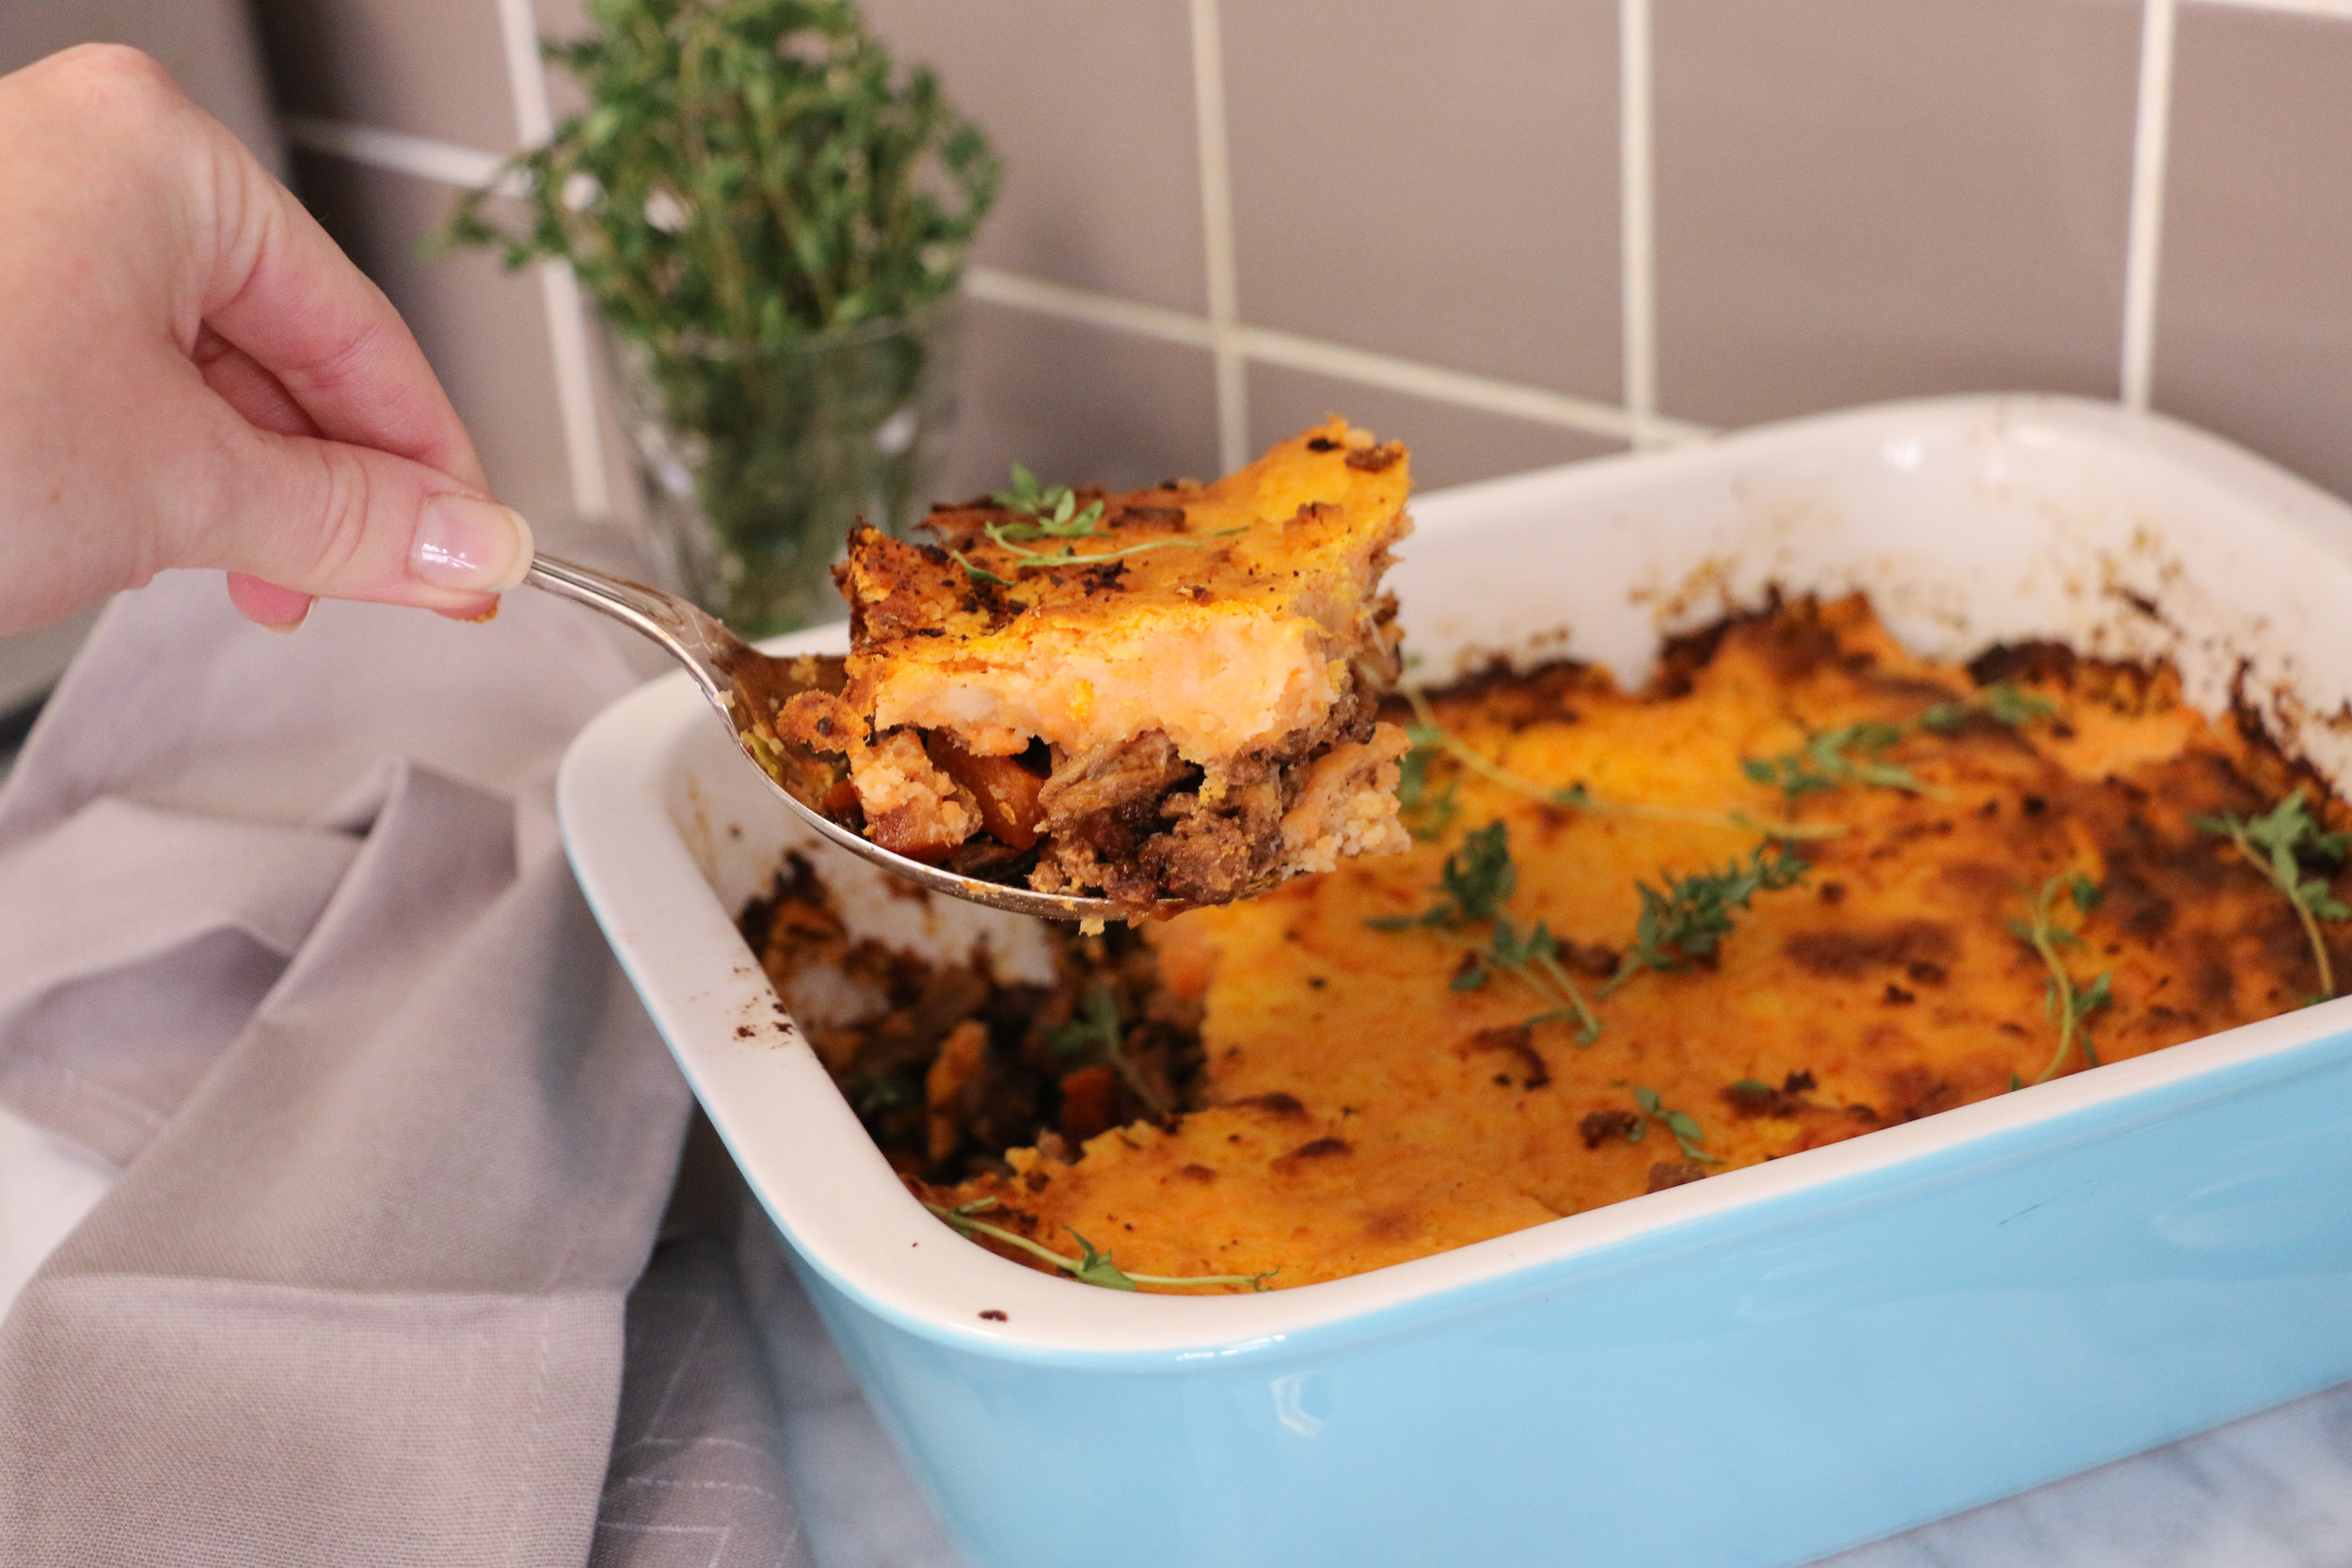 Healthy-Gluten-Free-Shepherds-Pie-5.jpg